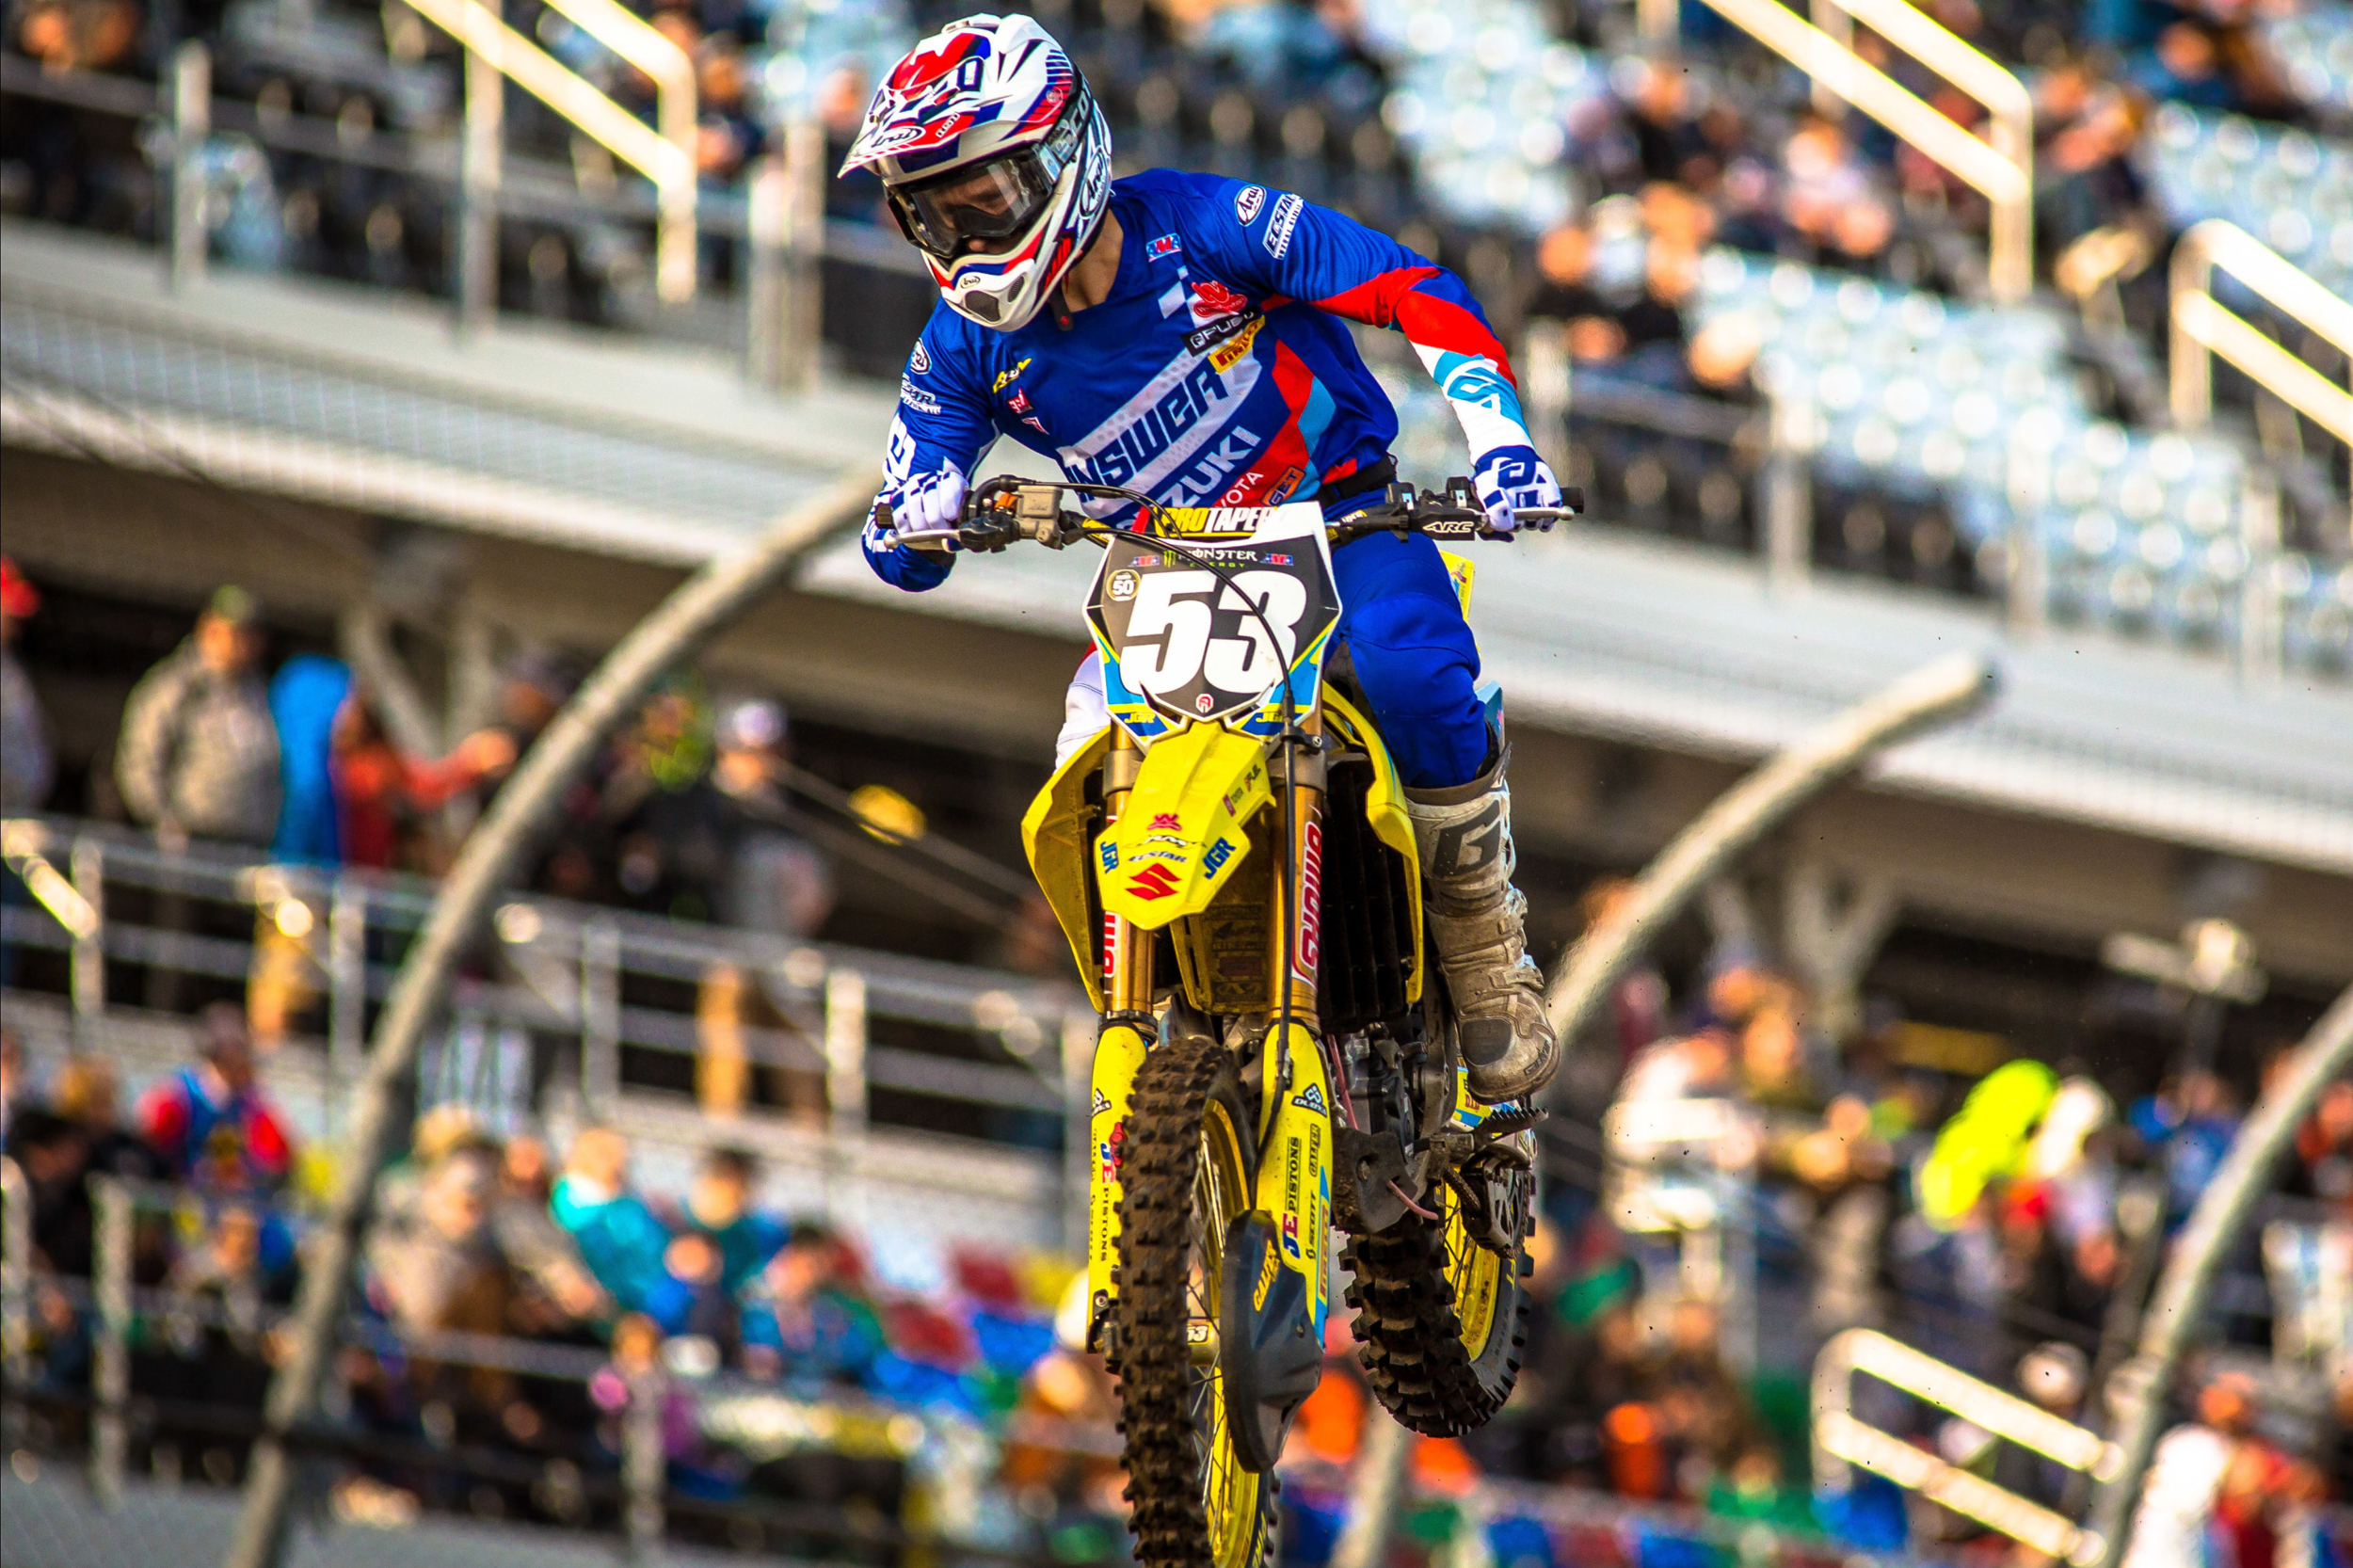 Jimmy Decotis (#53) showed solid pace in qualifying on his Suzuki RM-Z250